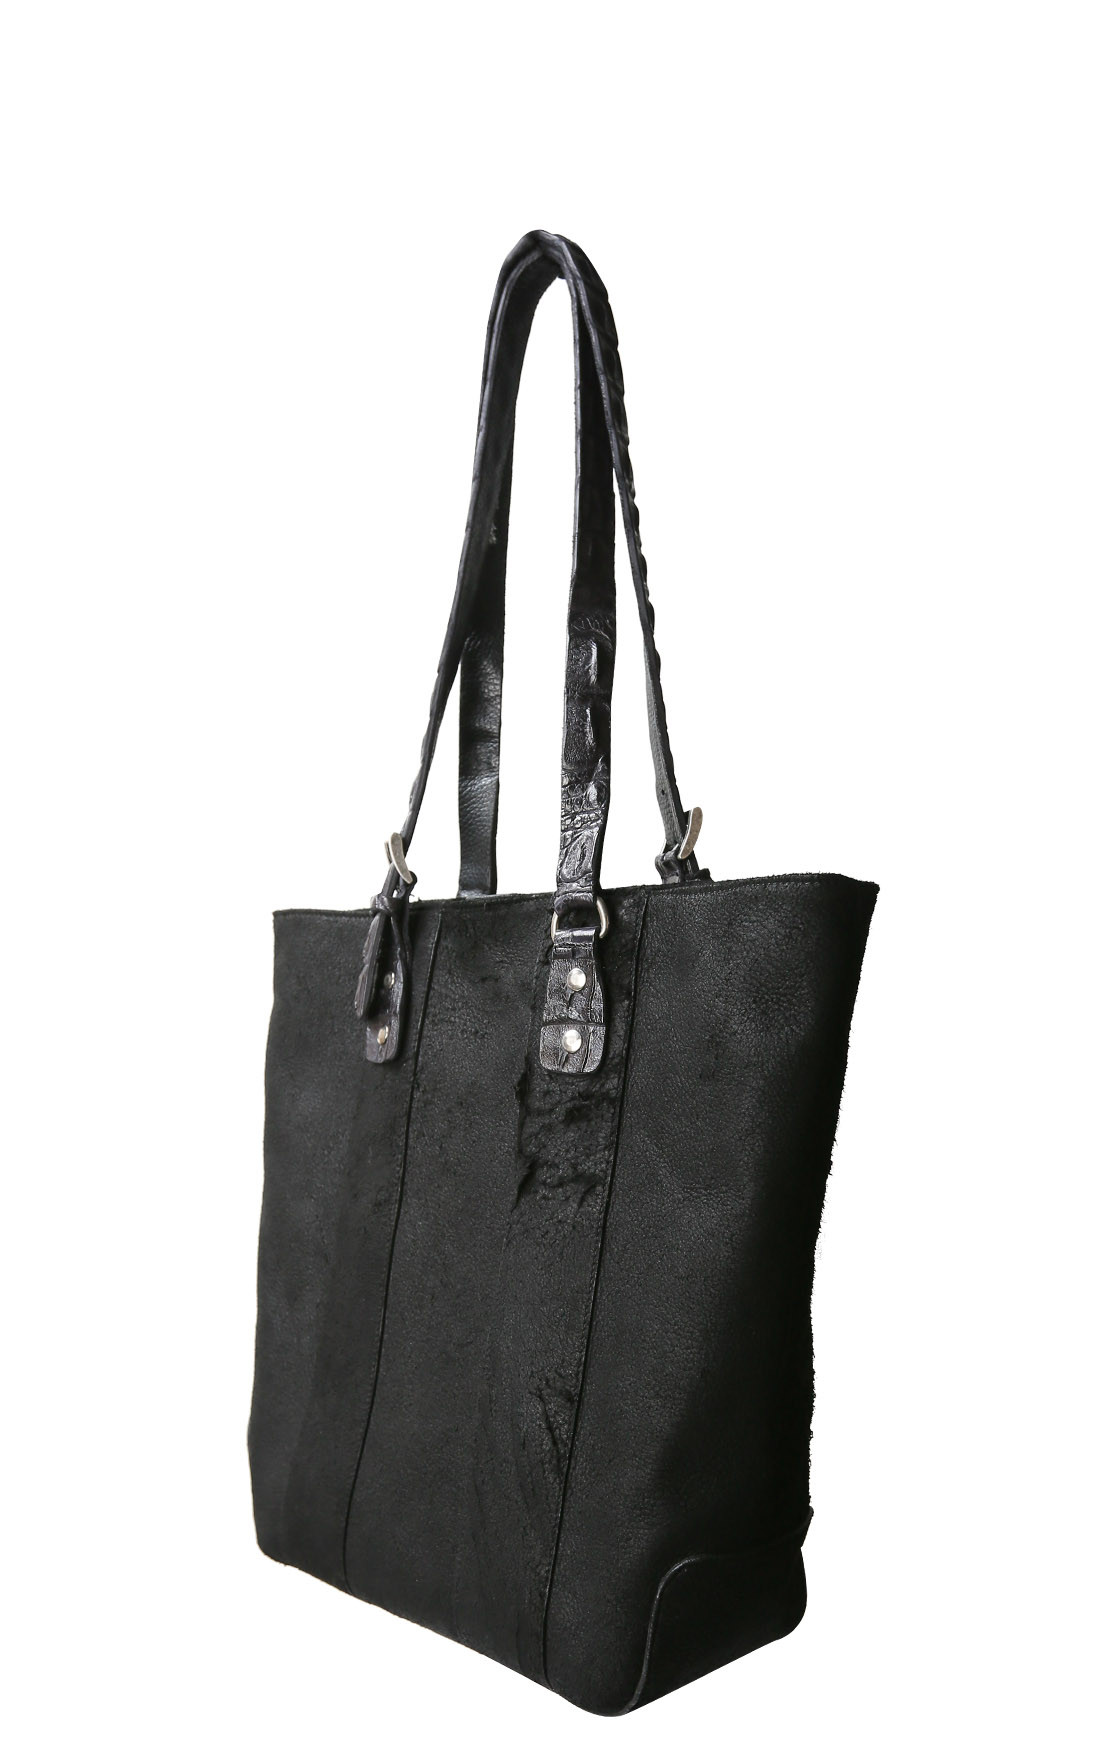 Scunzani Ivo - Black Leather Shopping Bag with Crocodile Trimming (B.SHOP.LAR)